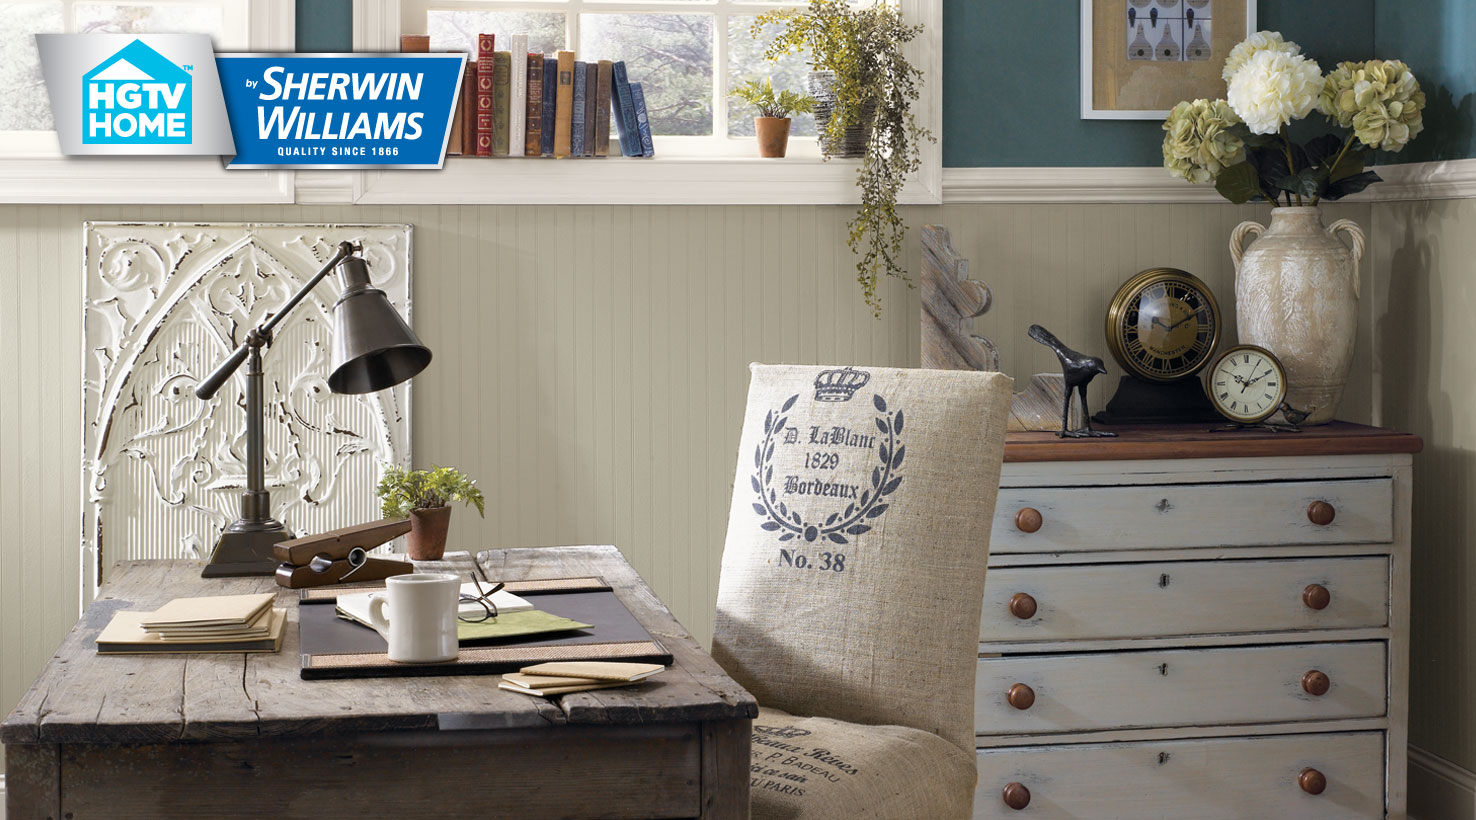 Neutral Paint Colors Neutral Nuance Wallpaper Collection  Hgtv Home™Sherwinwilliams